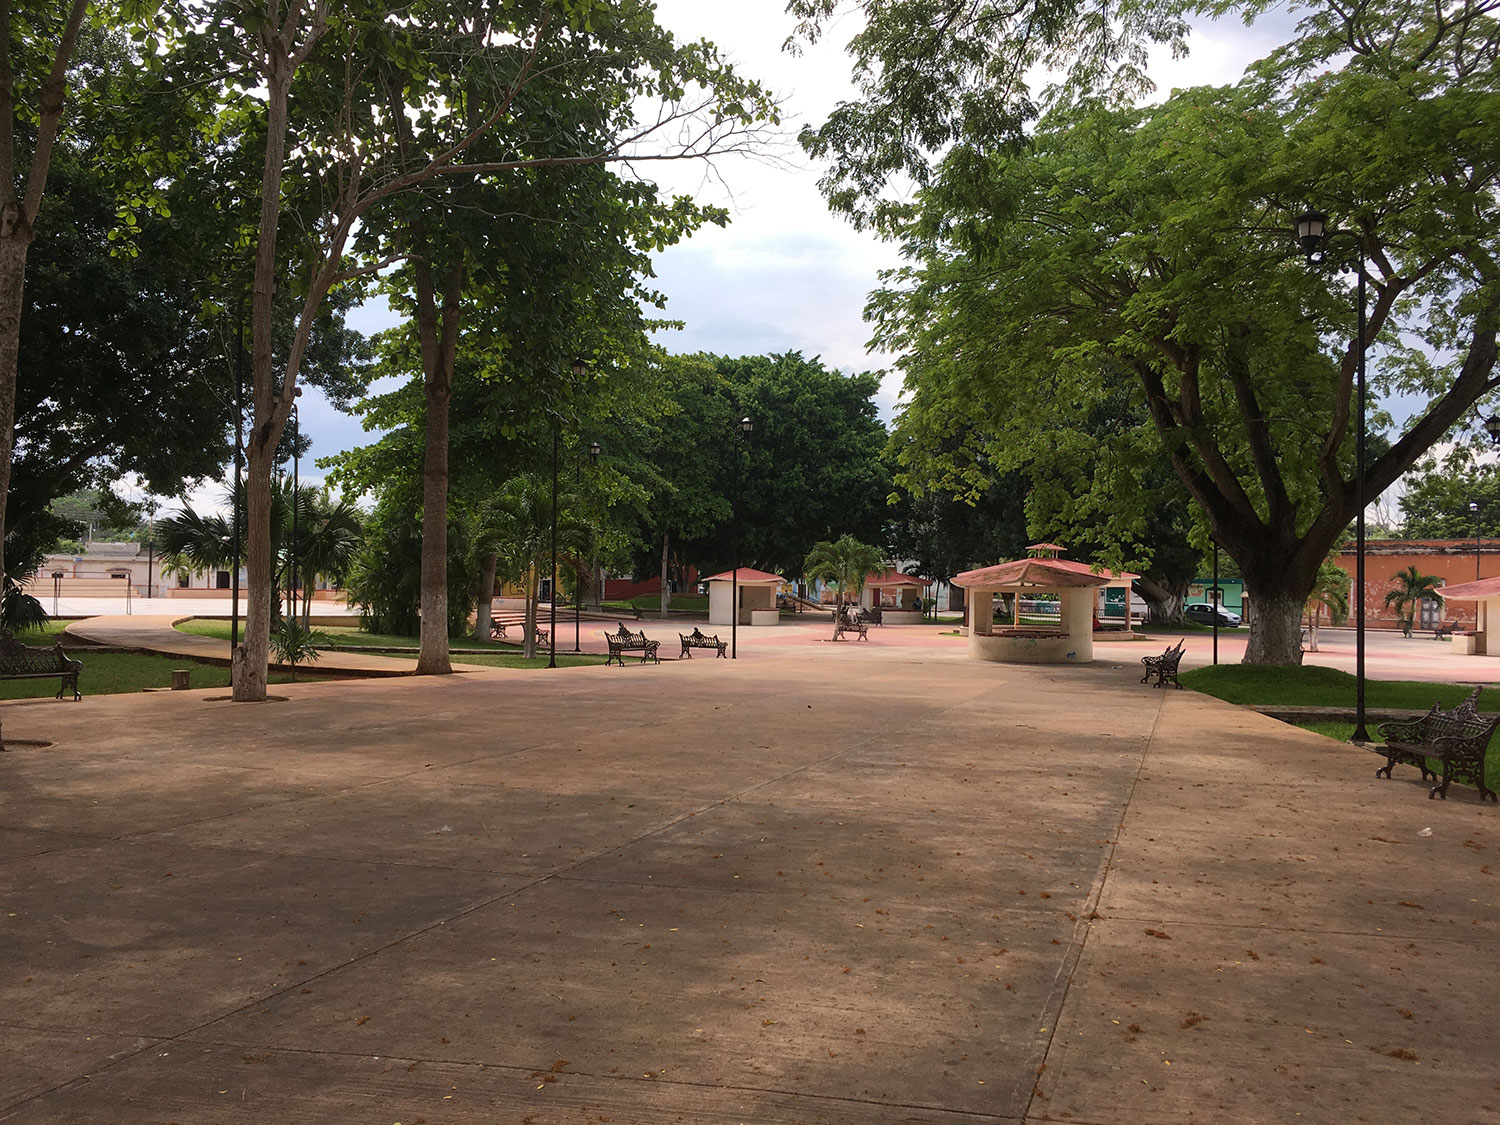 The park/main square in Uayma.